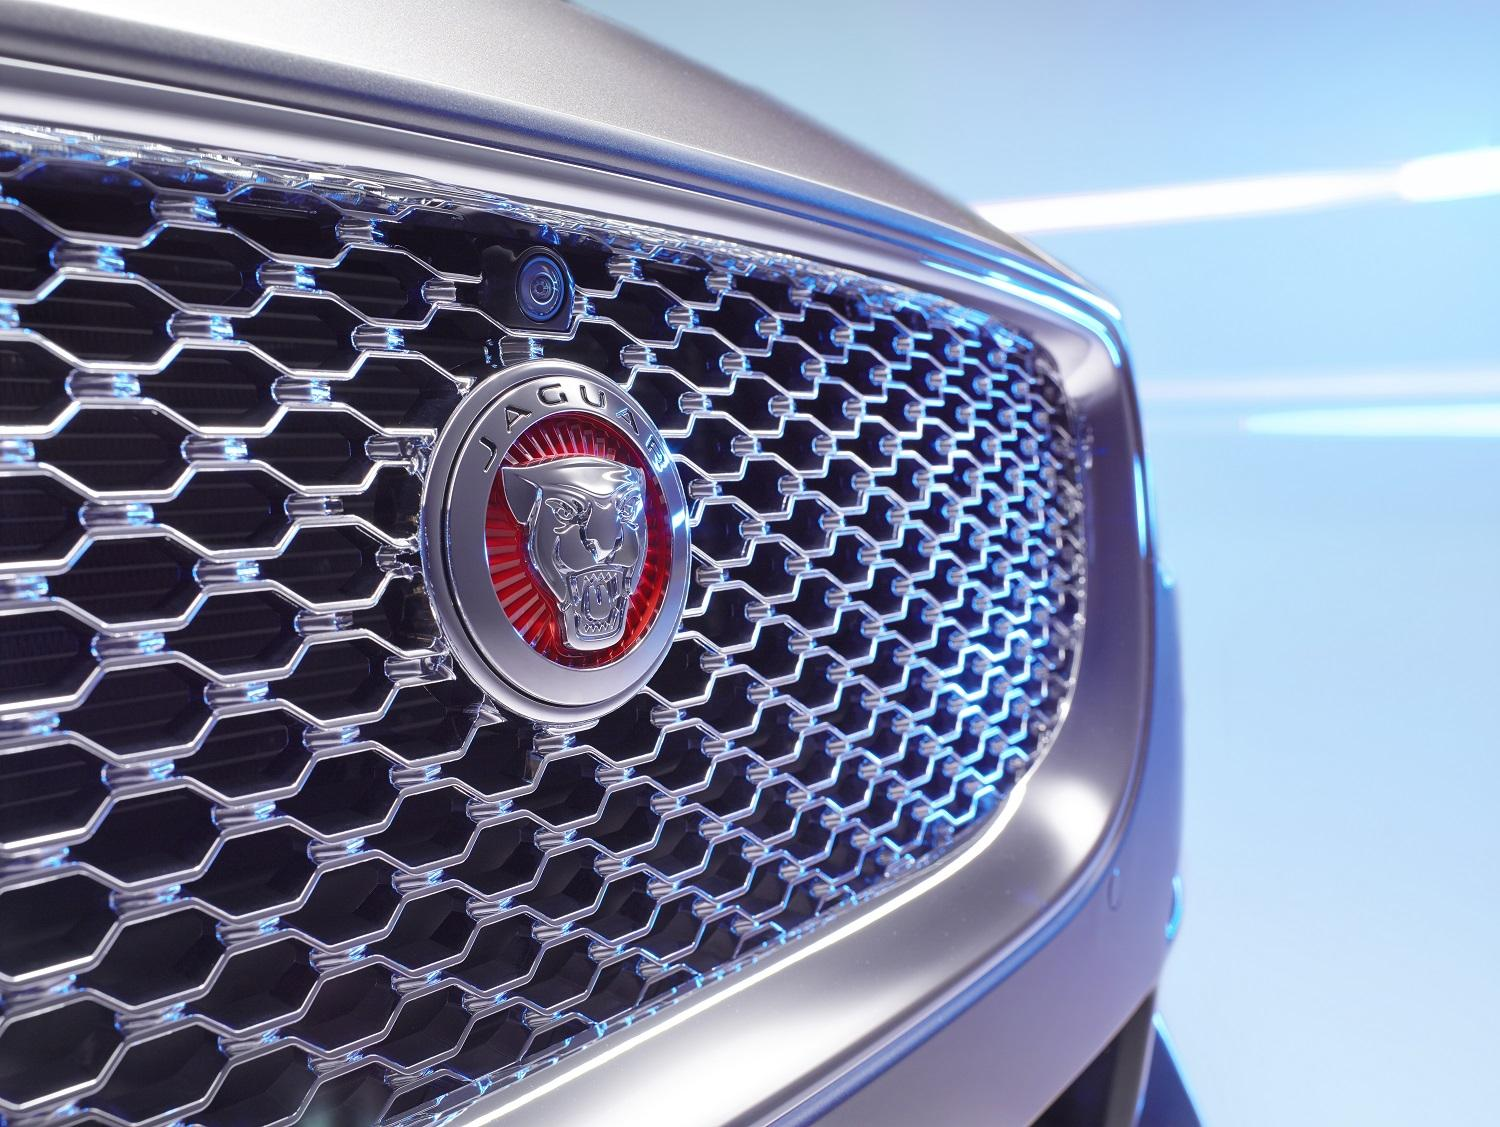 Coutning Cars Wallpaper Jaguar Says An Entry Level Hatchback Is A Definite Maybe